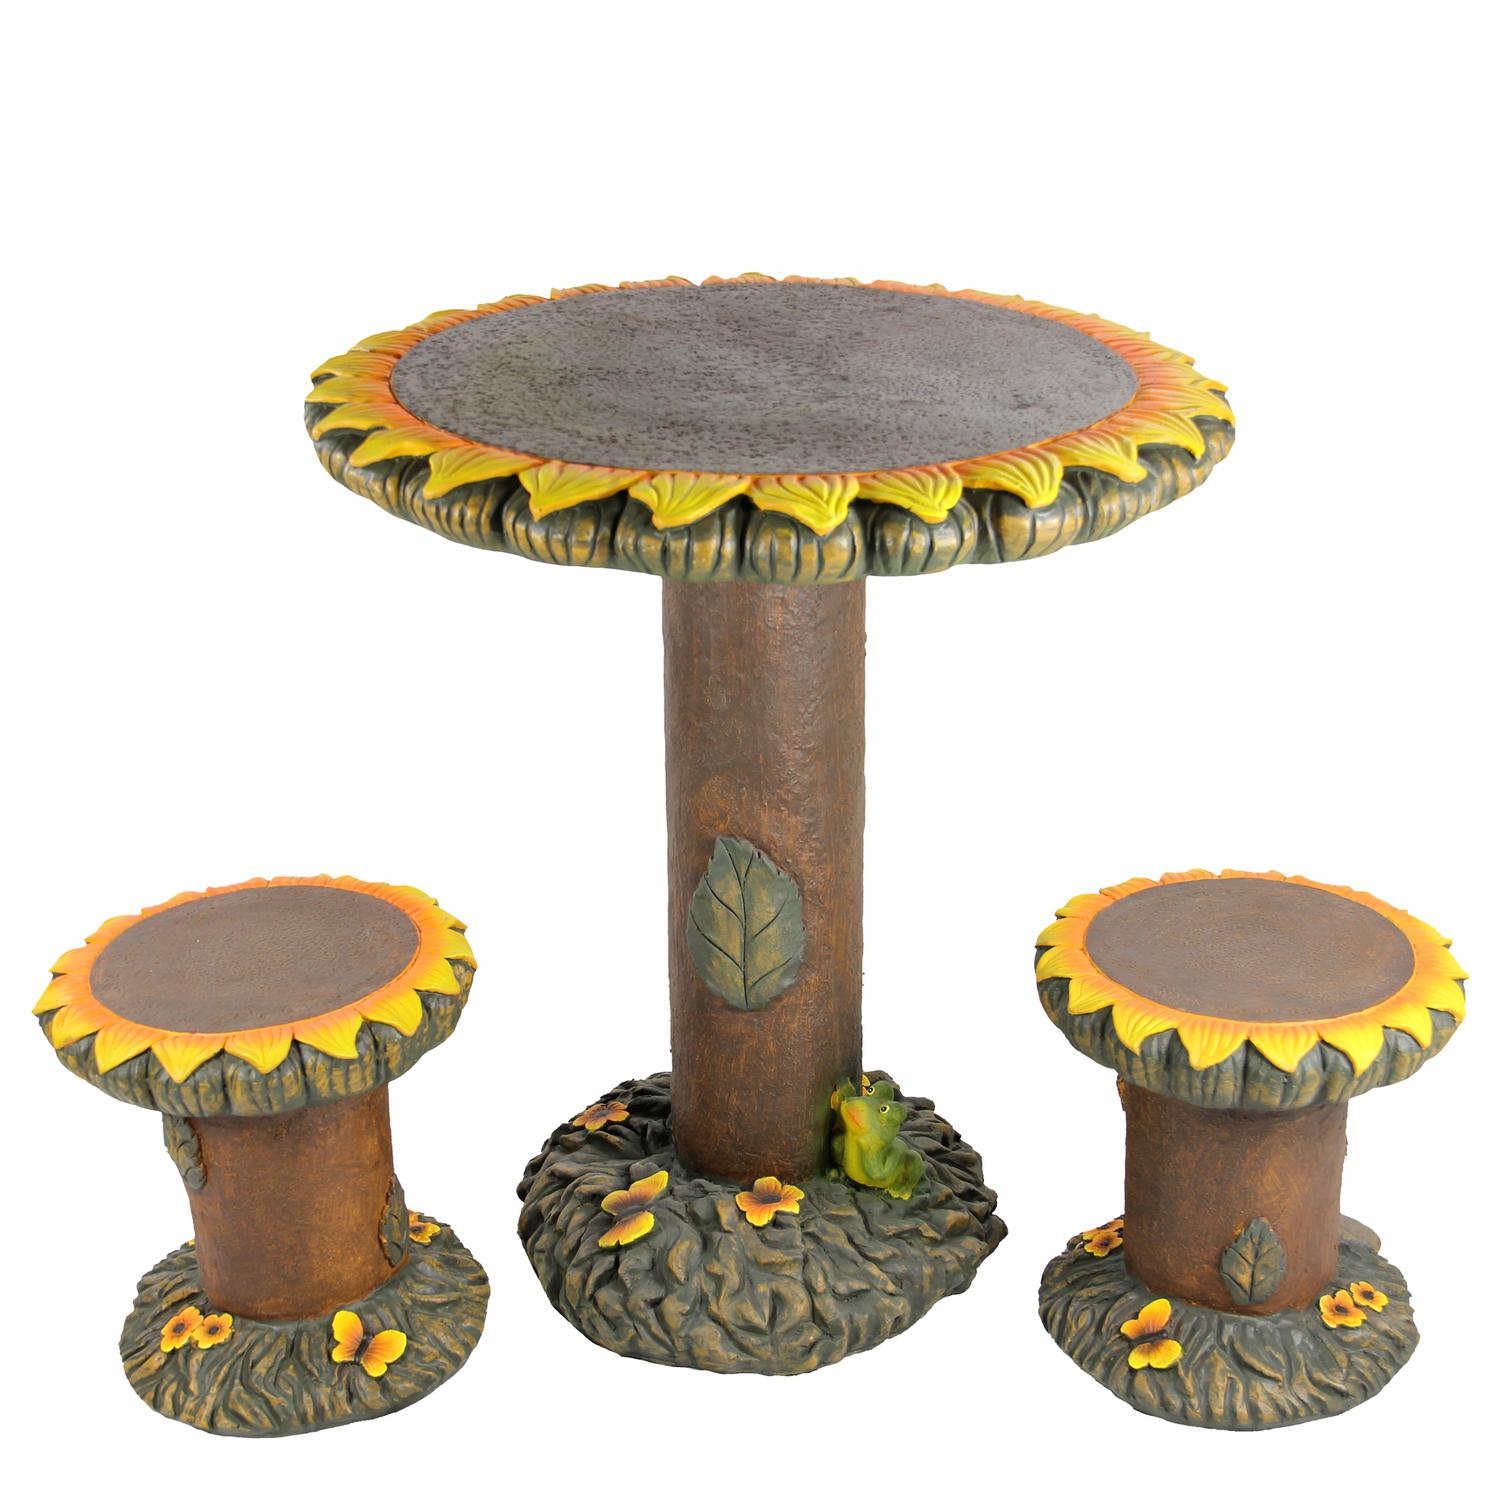 3-Piece Sunflower Table and Chair Novelty Garden Patio Furniture Set